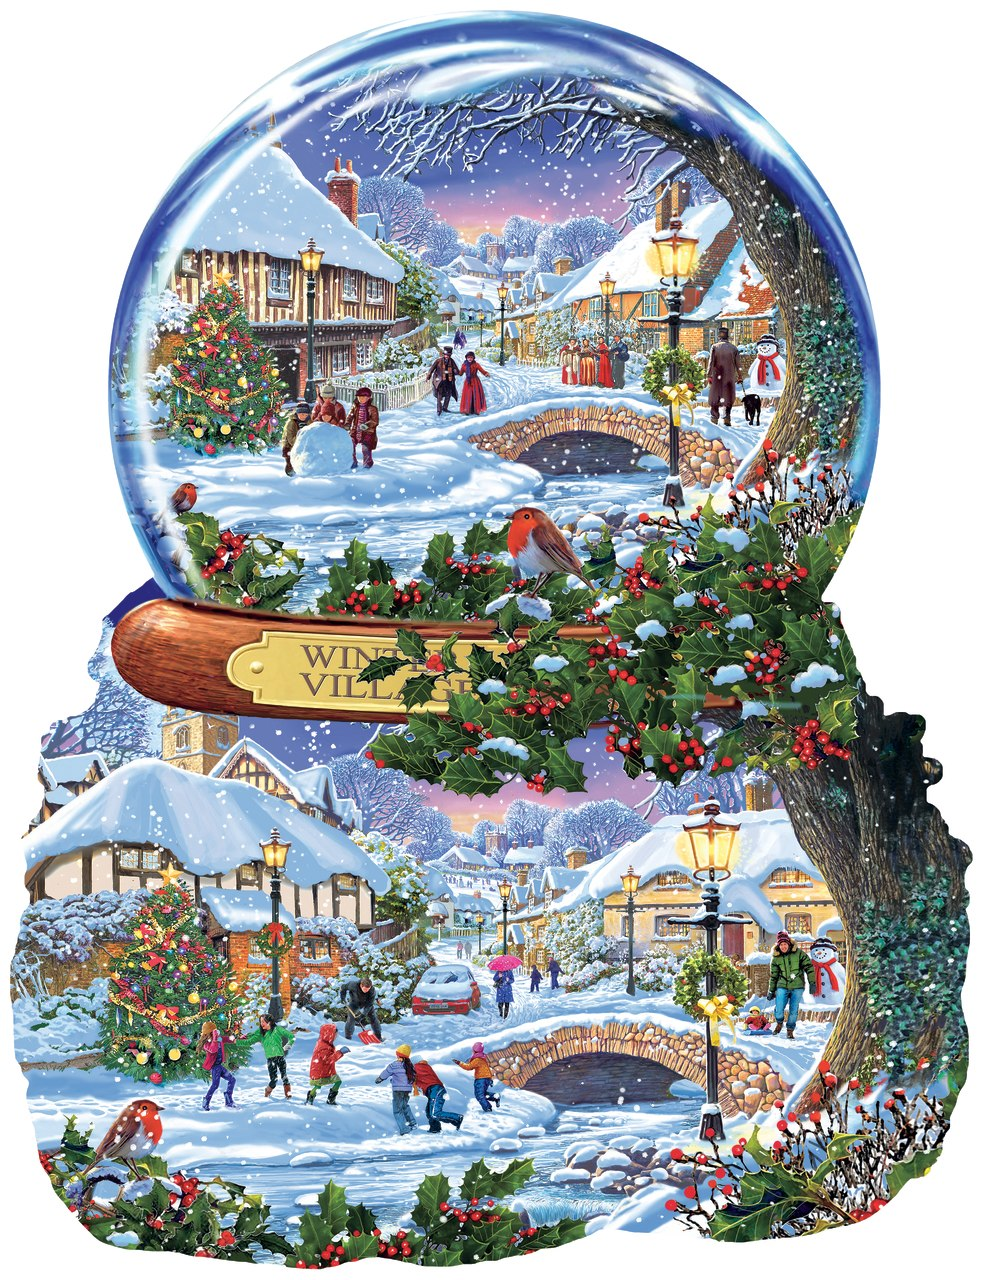 Winter Village - 1000pc Shaped Jigsaw Puzzle By Sunsout  			  					NEW